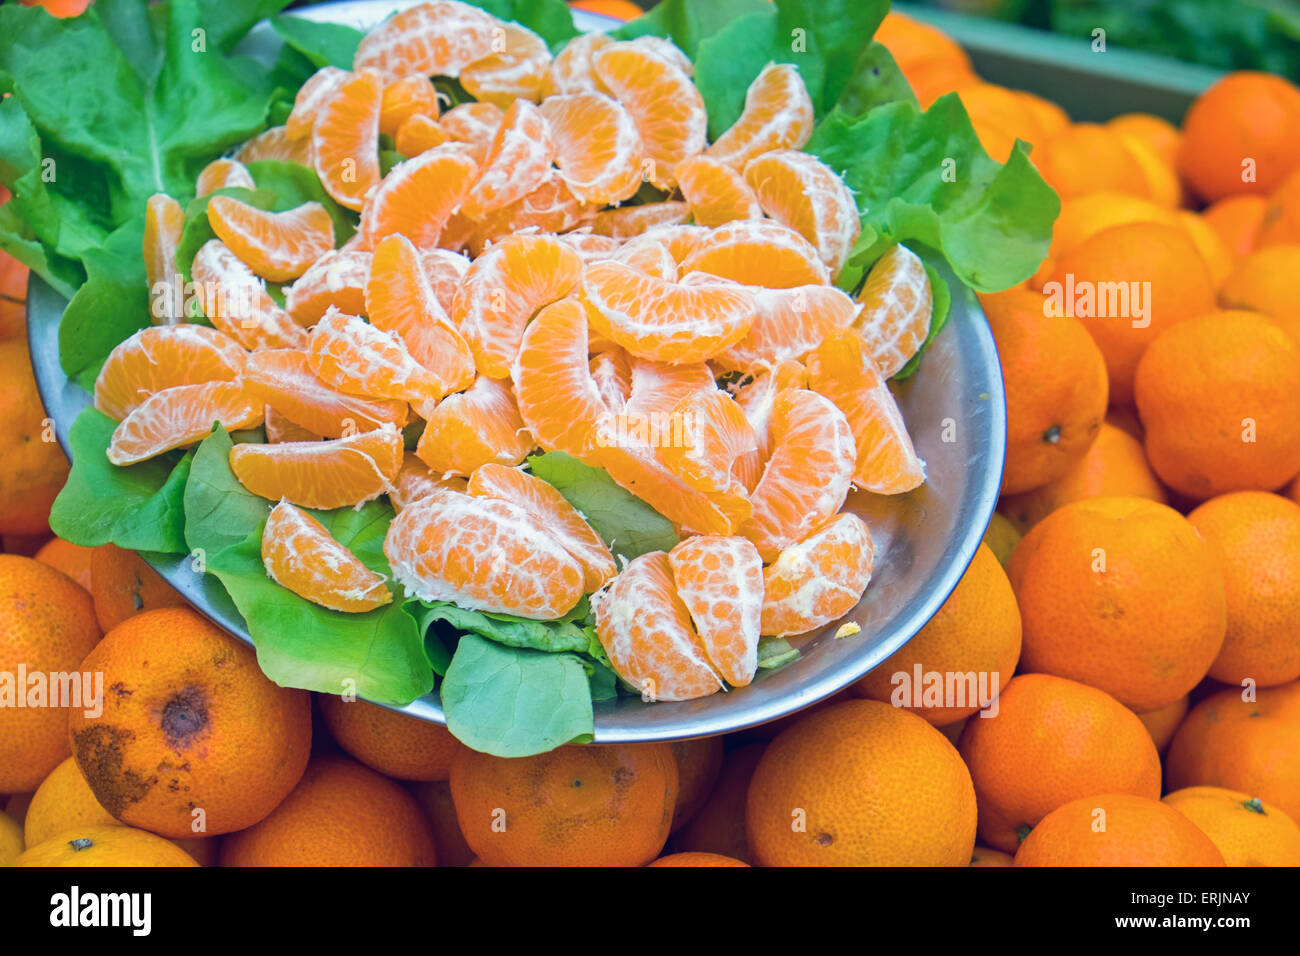 Clemetine slices on a plate seen on a market - Stock Image